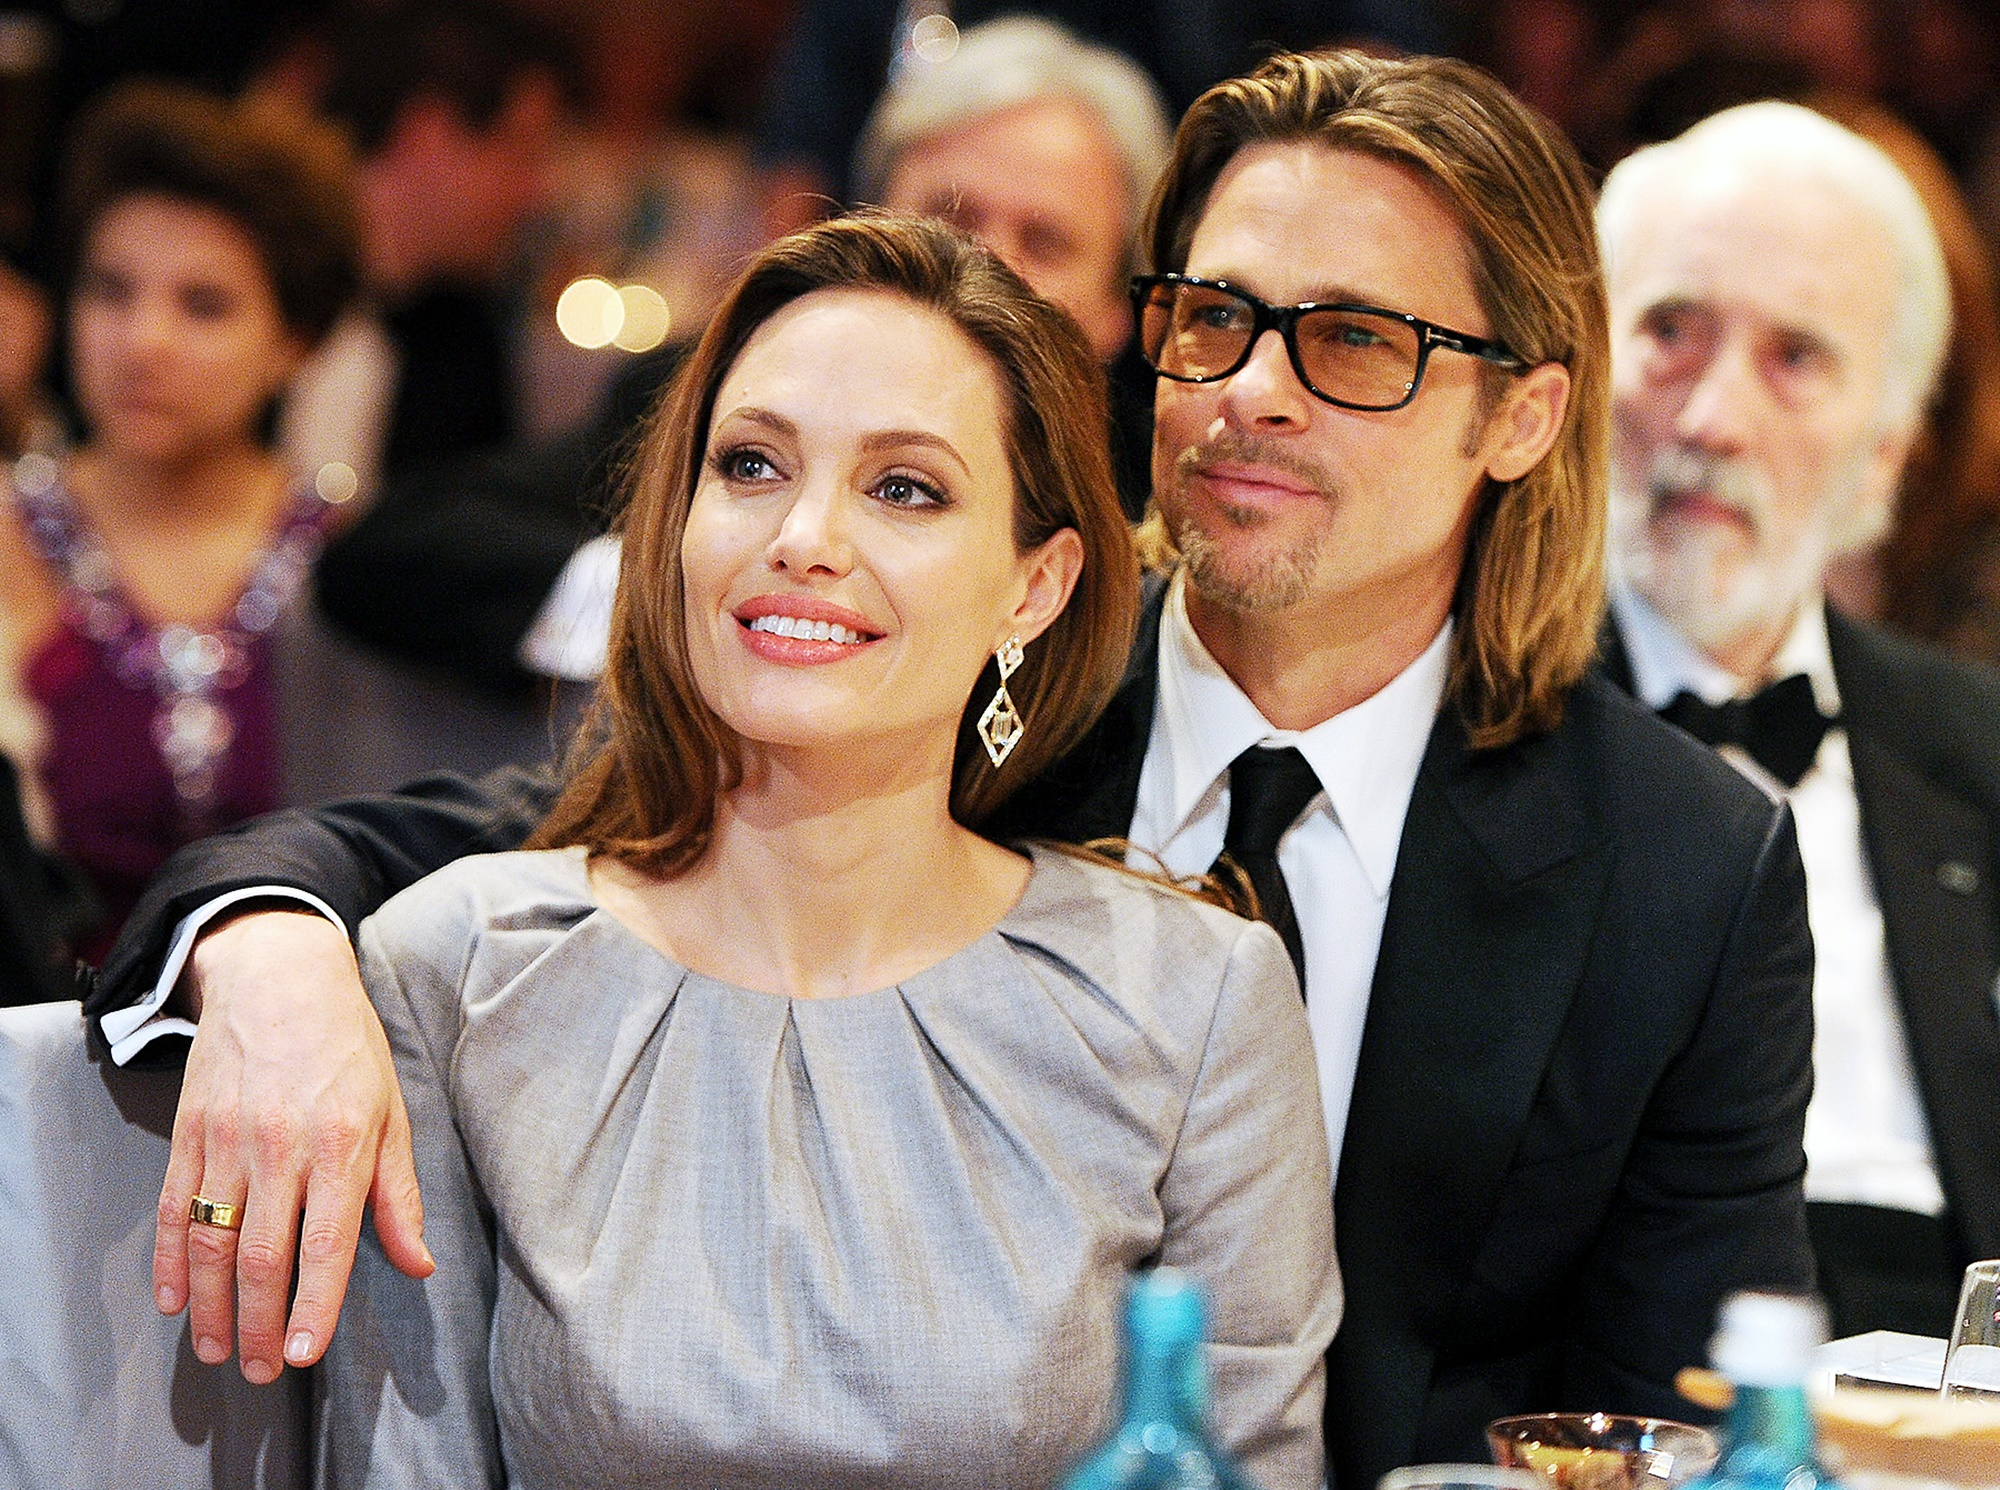 Angelina Jolie and Brad Pitt while they were still married, during a formal event